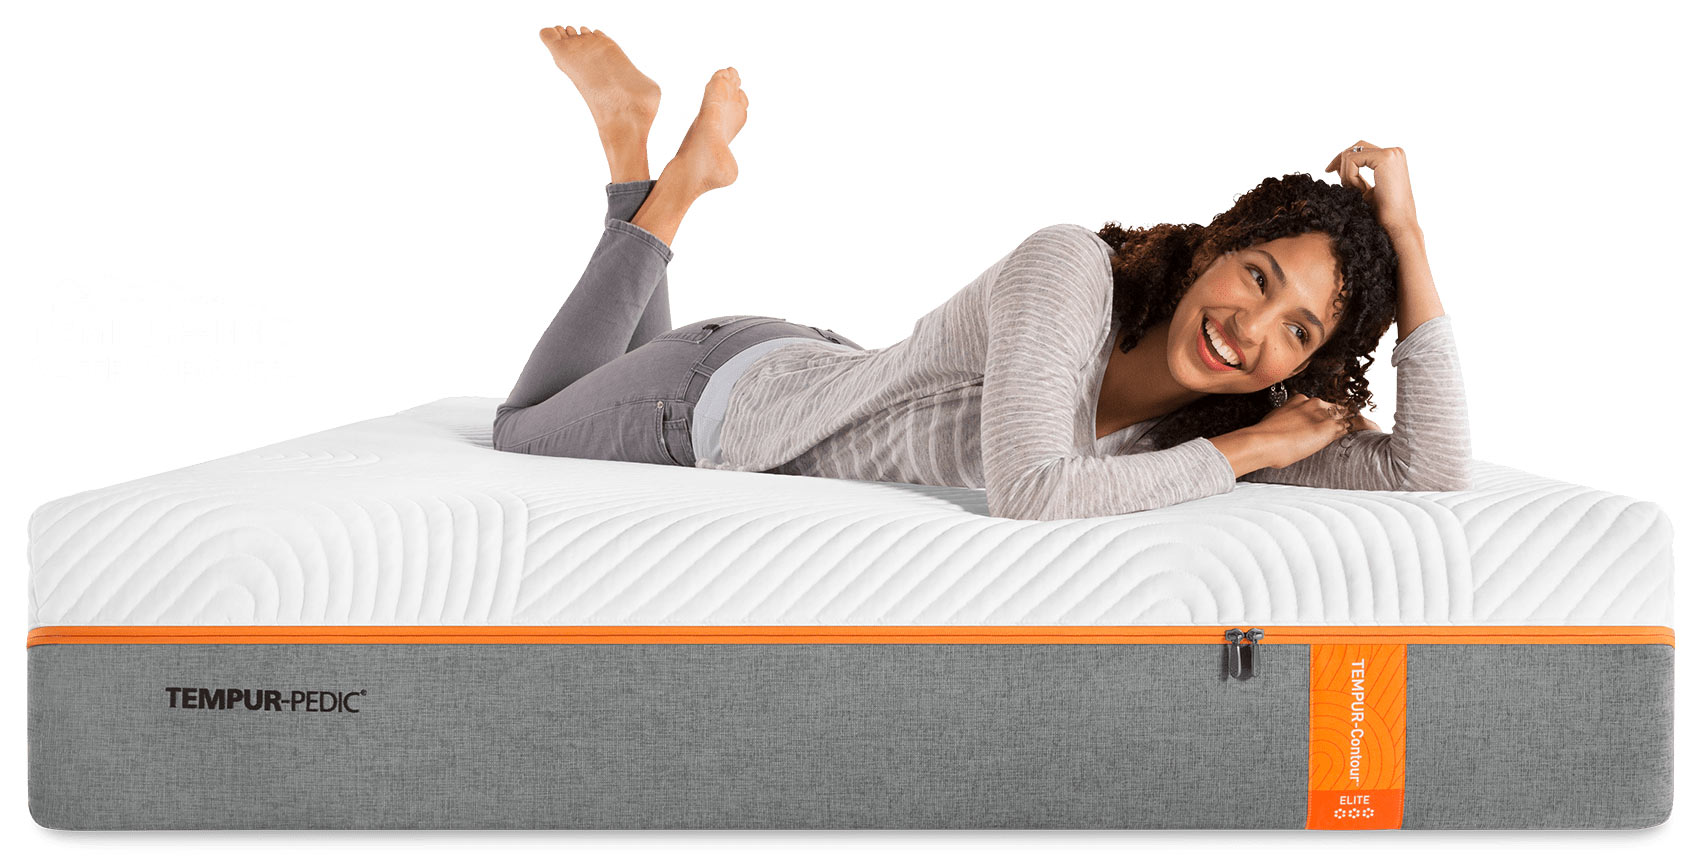 tempurpedic firm mattress